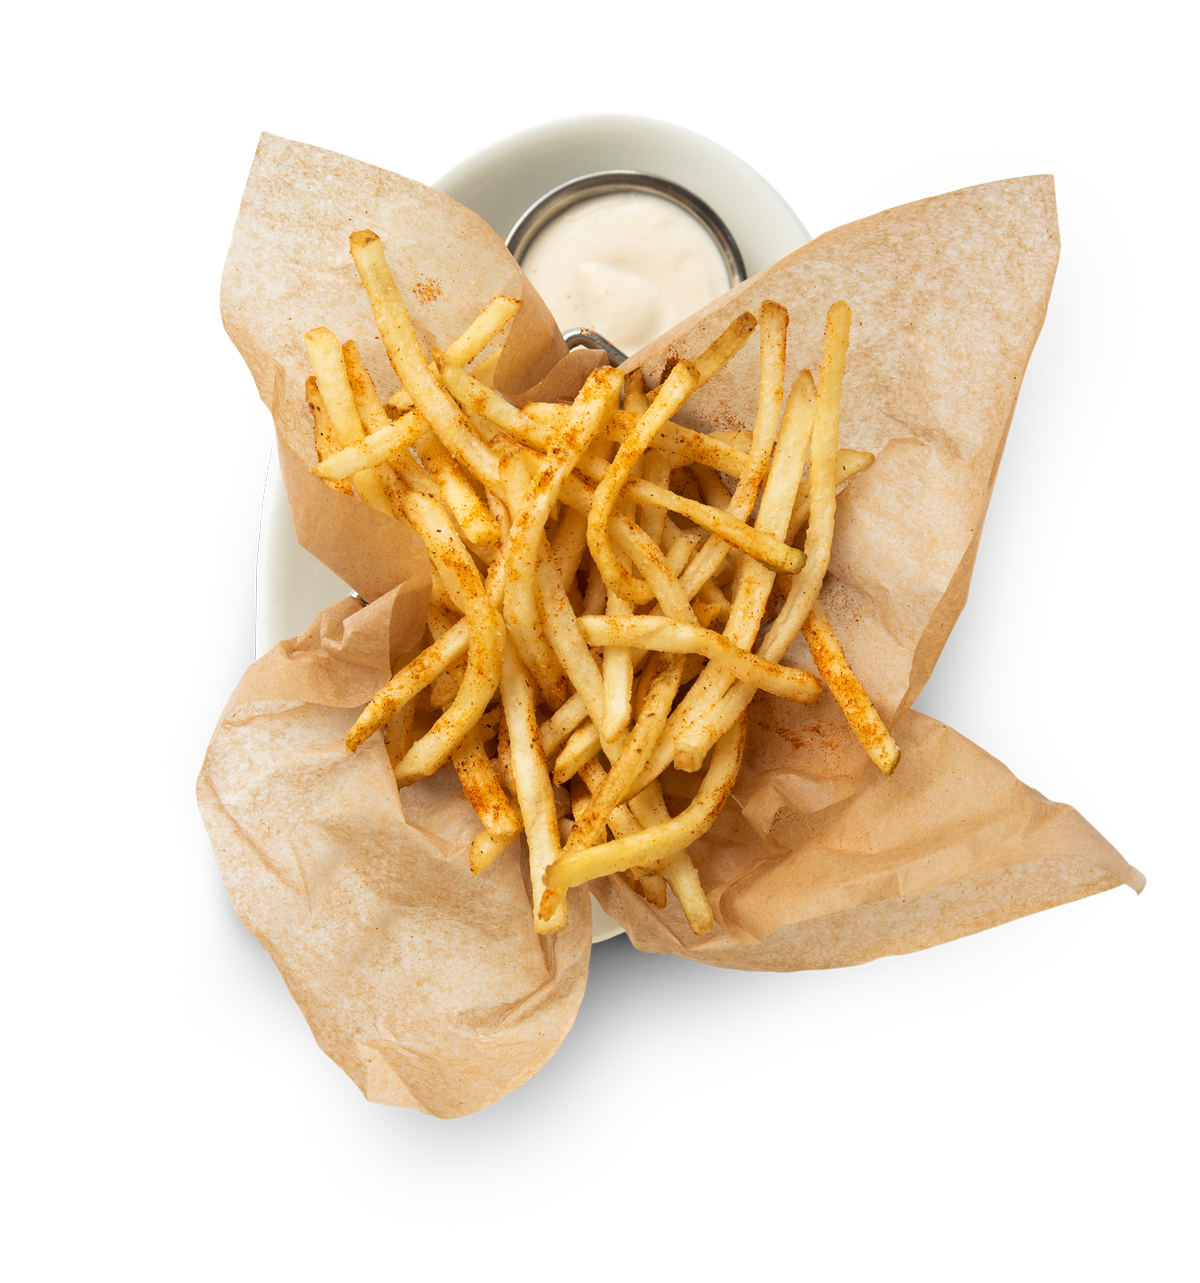 a side of french fries on a plate with a dipping sauce